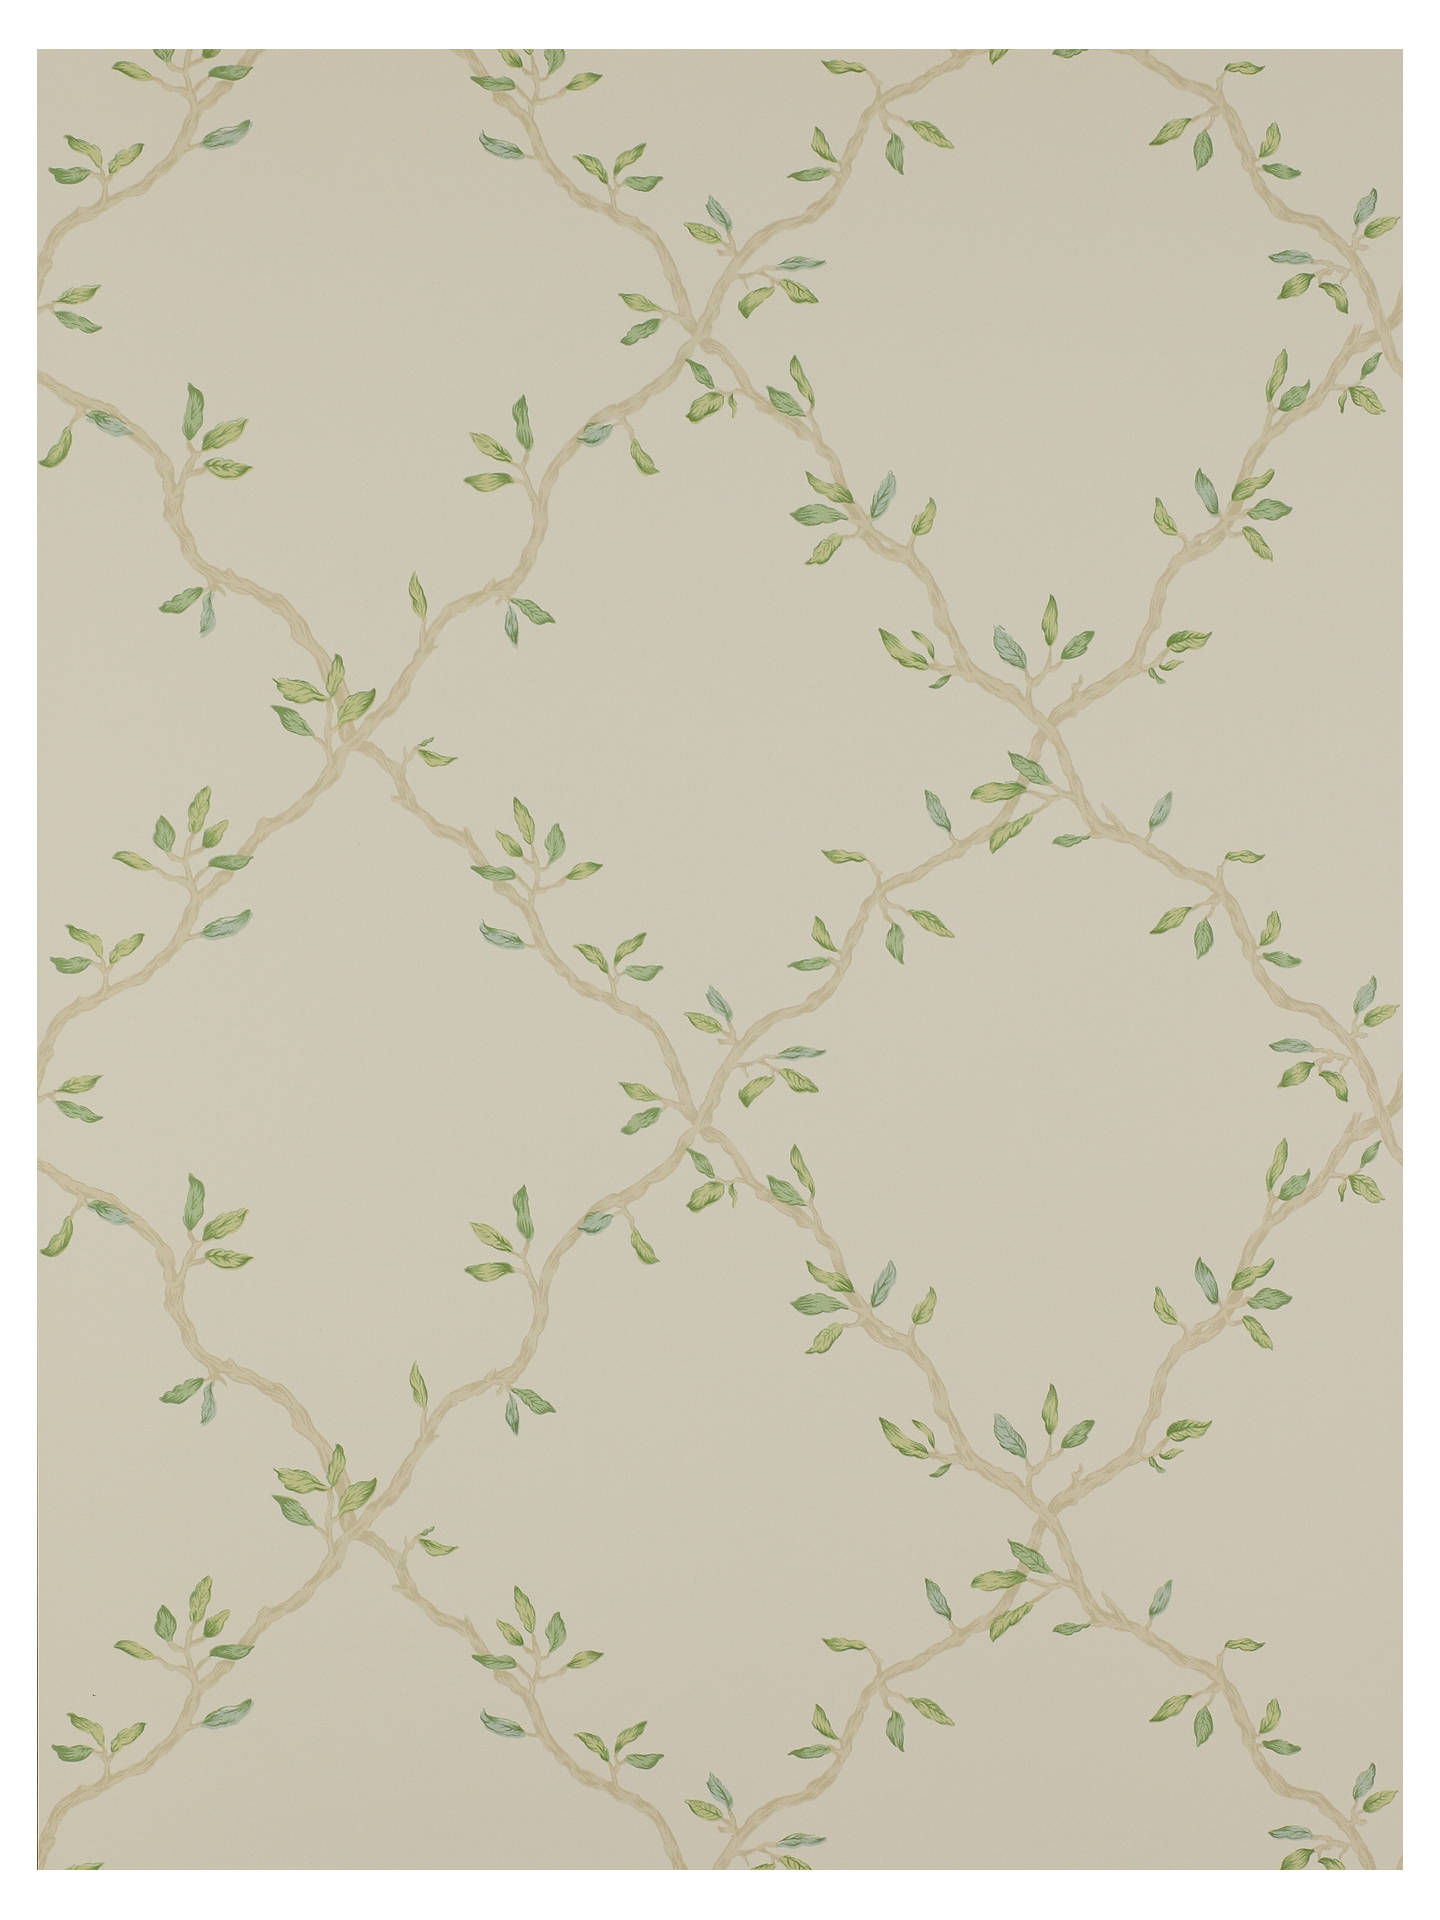 Buy Colefax and Fowler Leaf Trellis Wallpaper, Pale Green, 07706/02 Online at johnlewis.com